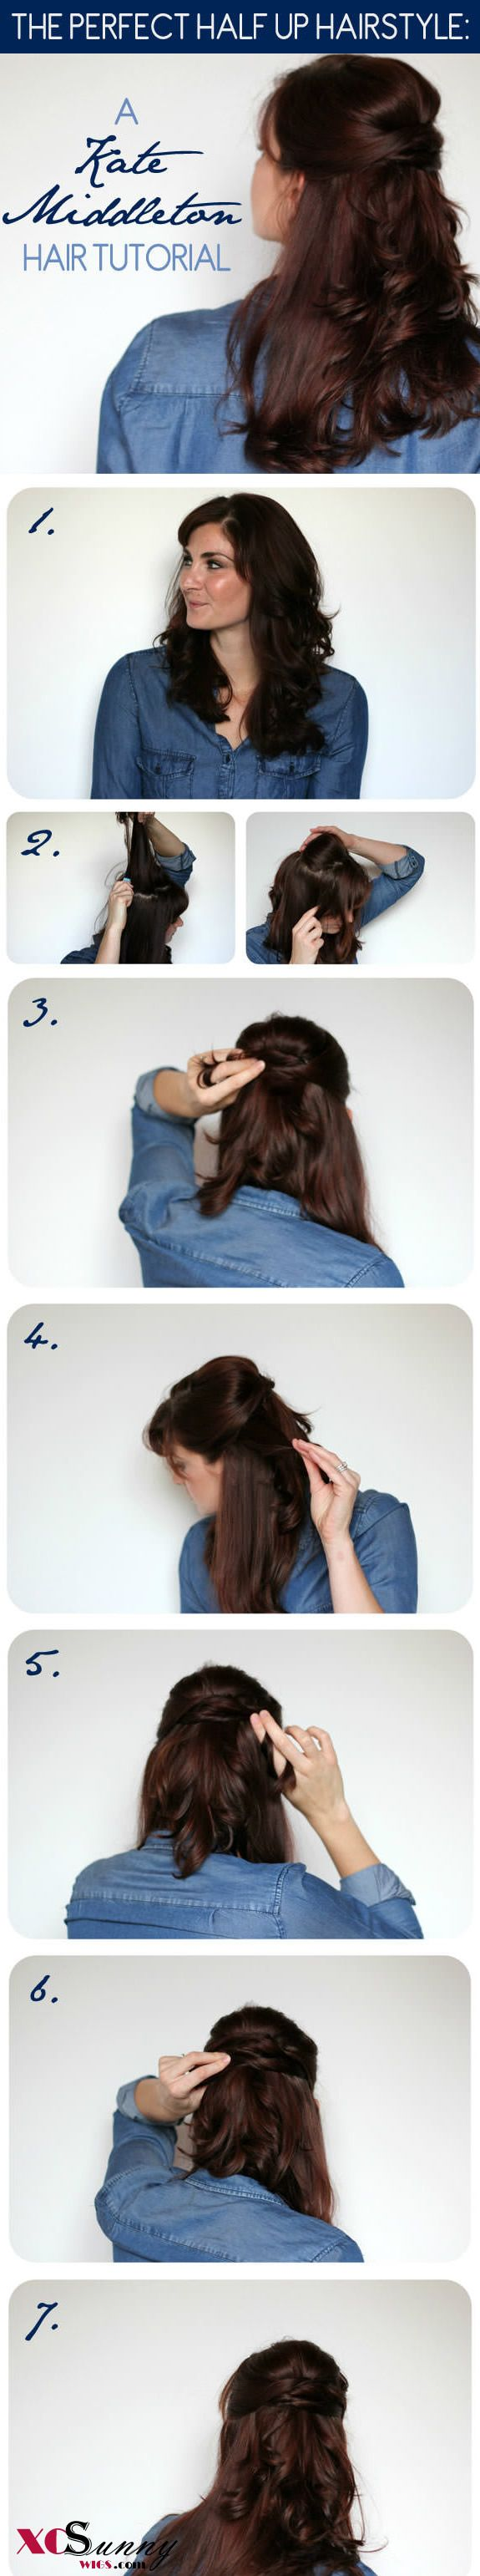 A Kate Middleton Hair Tutorial: Her Famous Half Up Hairstyle | XCSUNNYHAIR